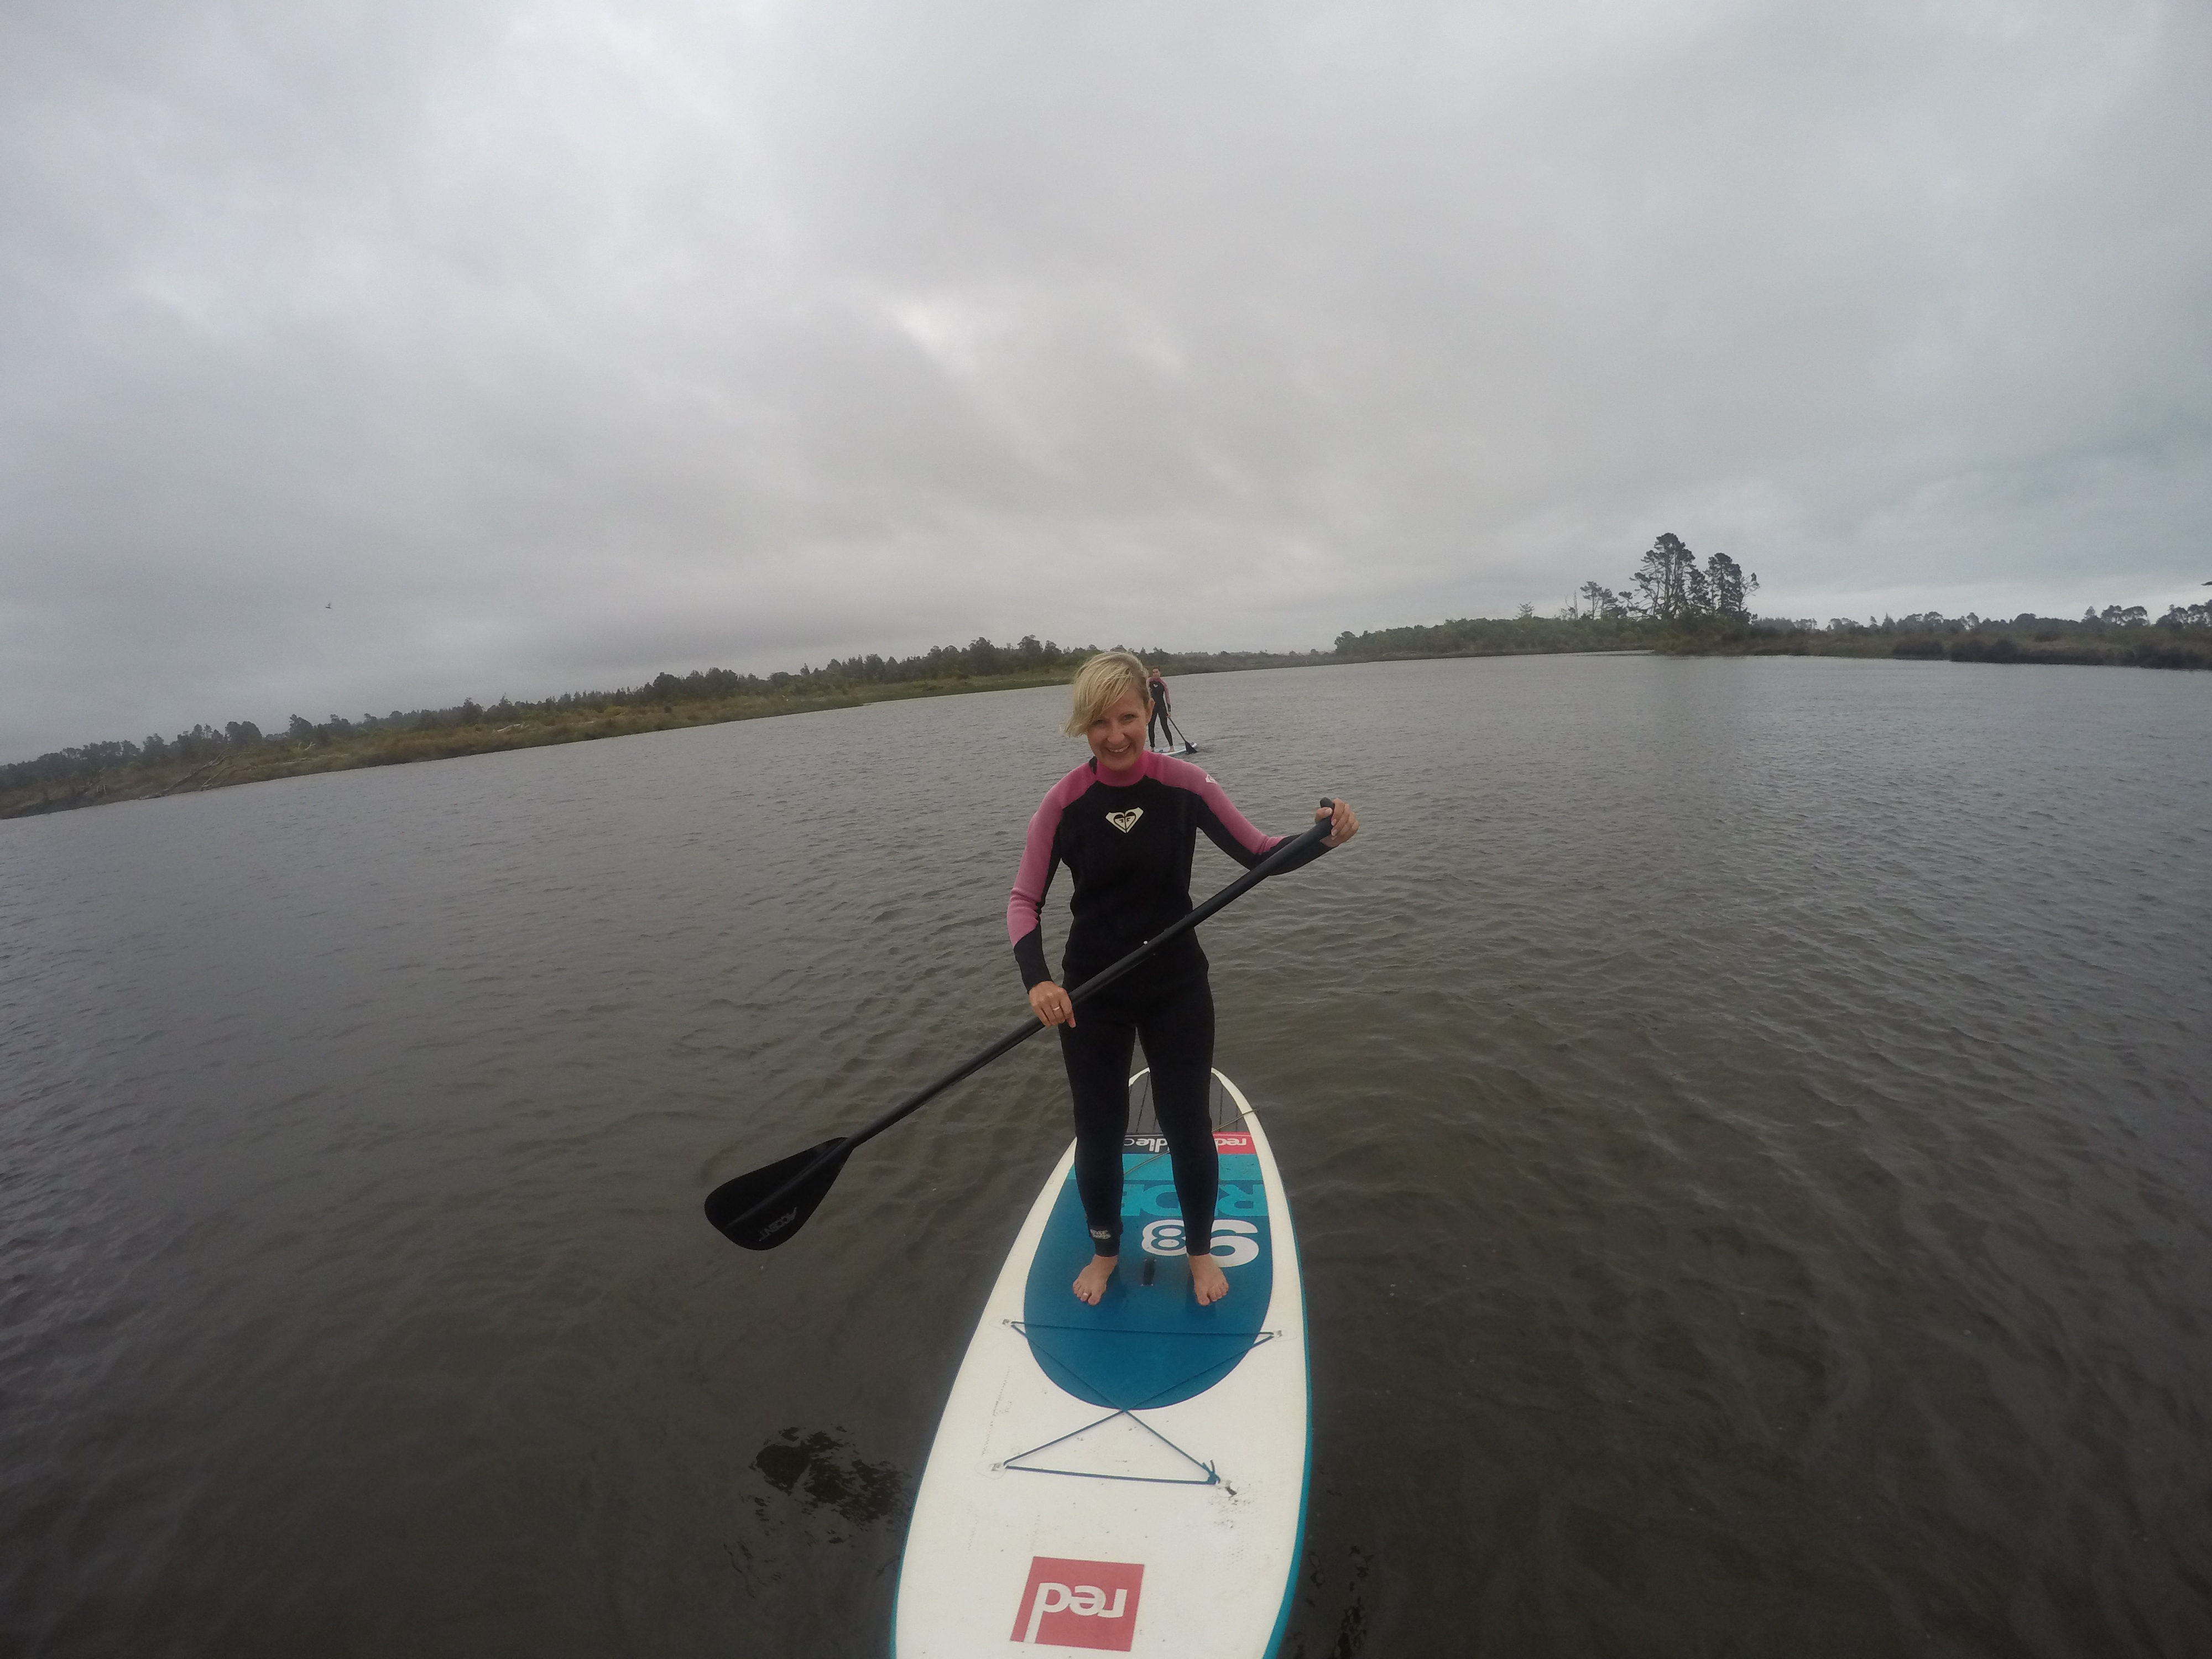 Me paddle boarding!